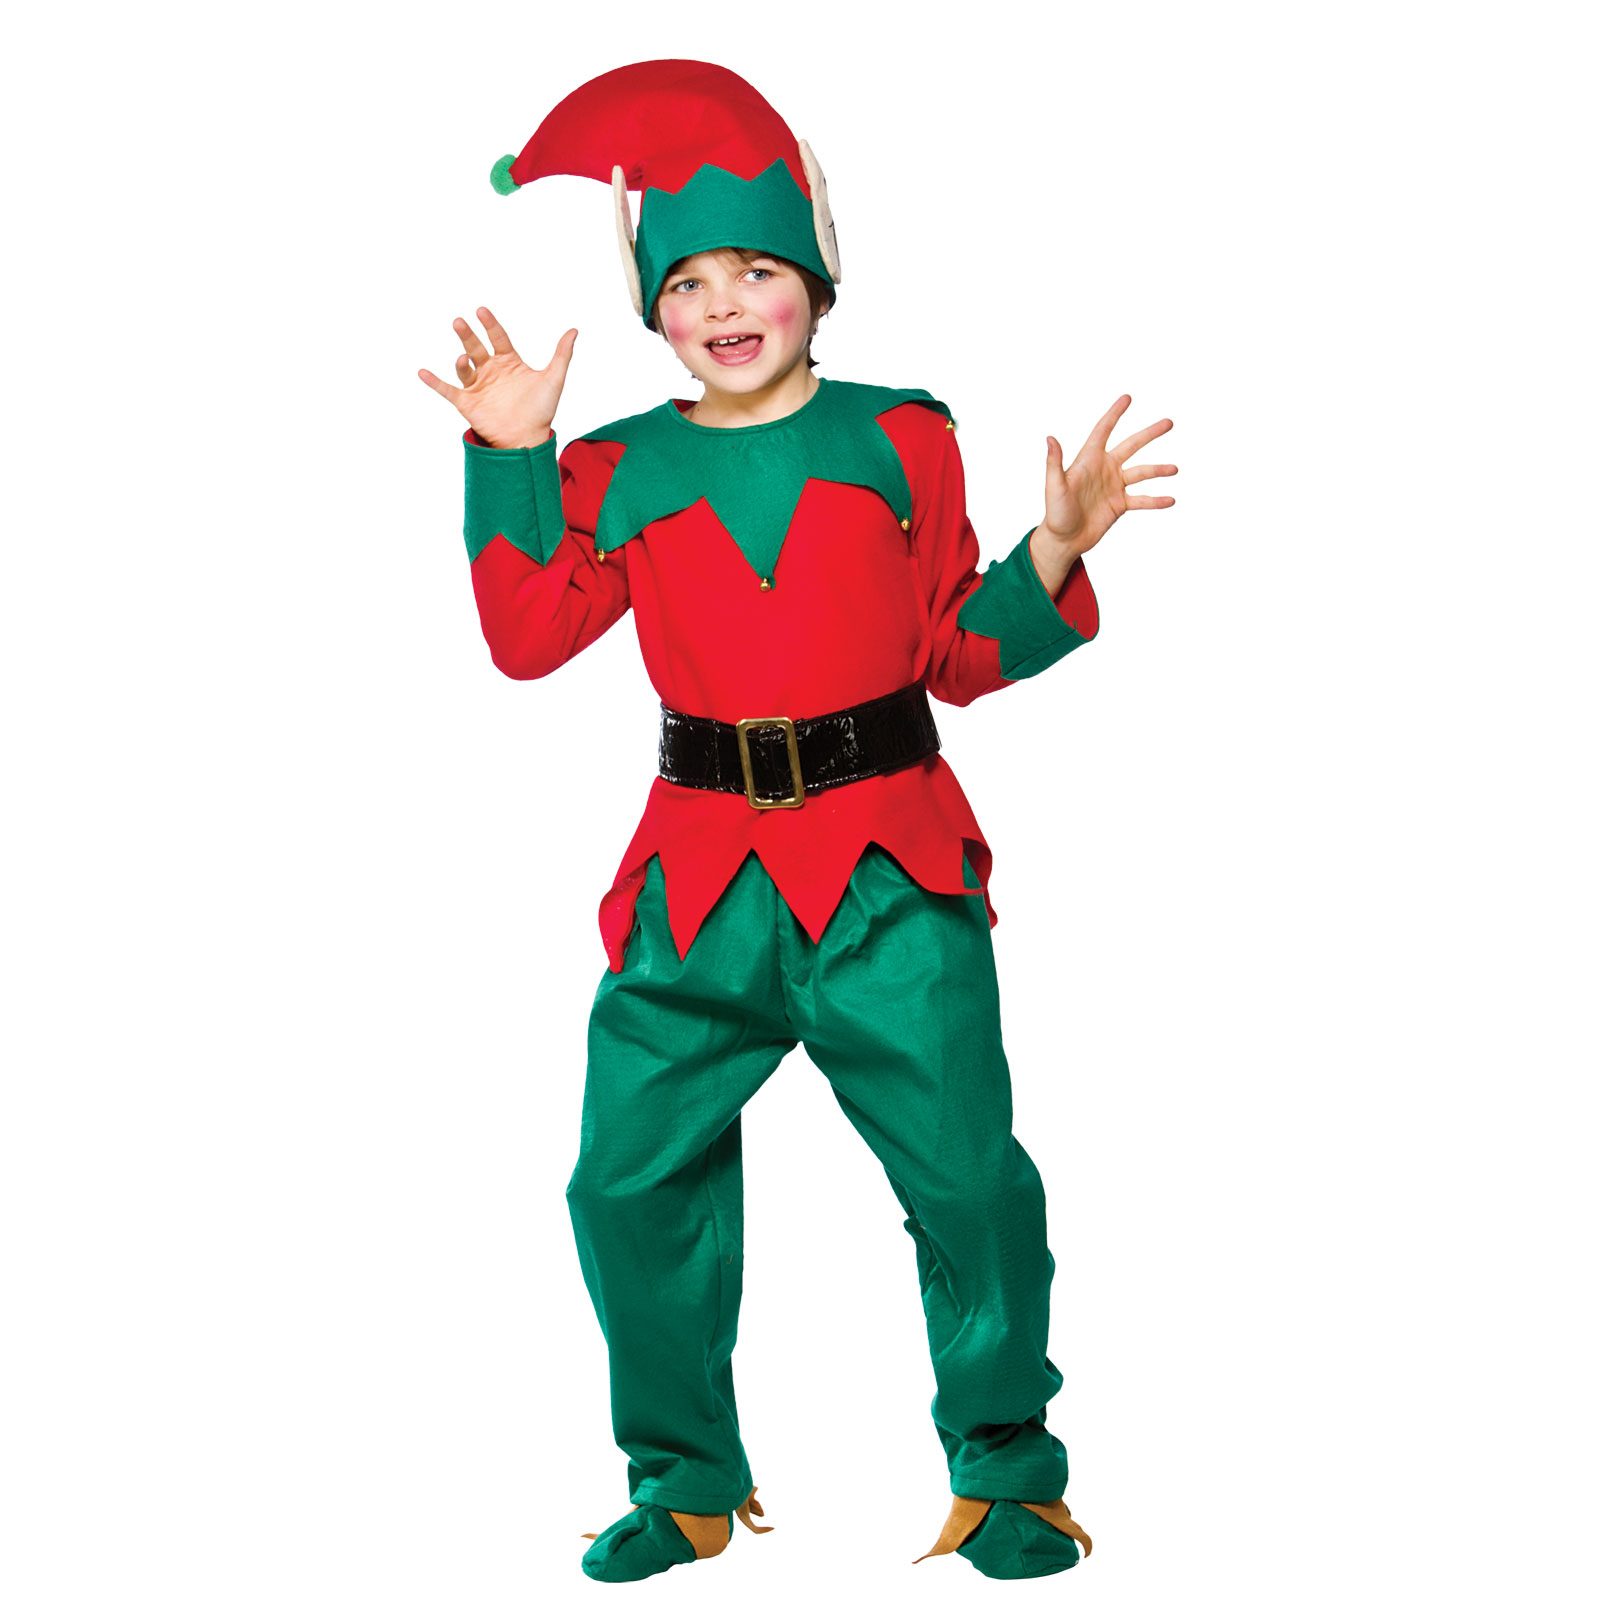 Christmas tree dress up images - Childrens Elf Suit Fancy Dress Christmas Panto Dress Up Festive Xmas Costume New Christmas Xs Party